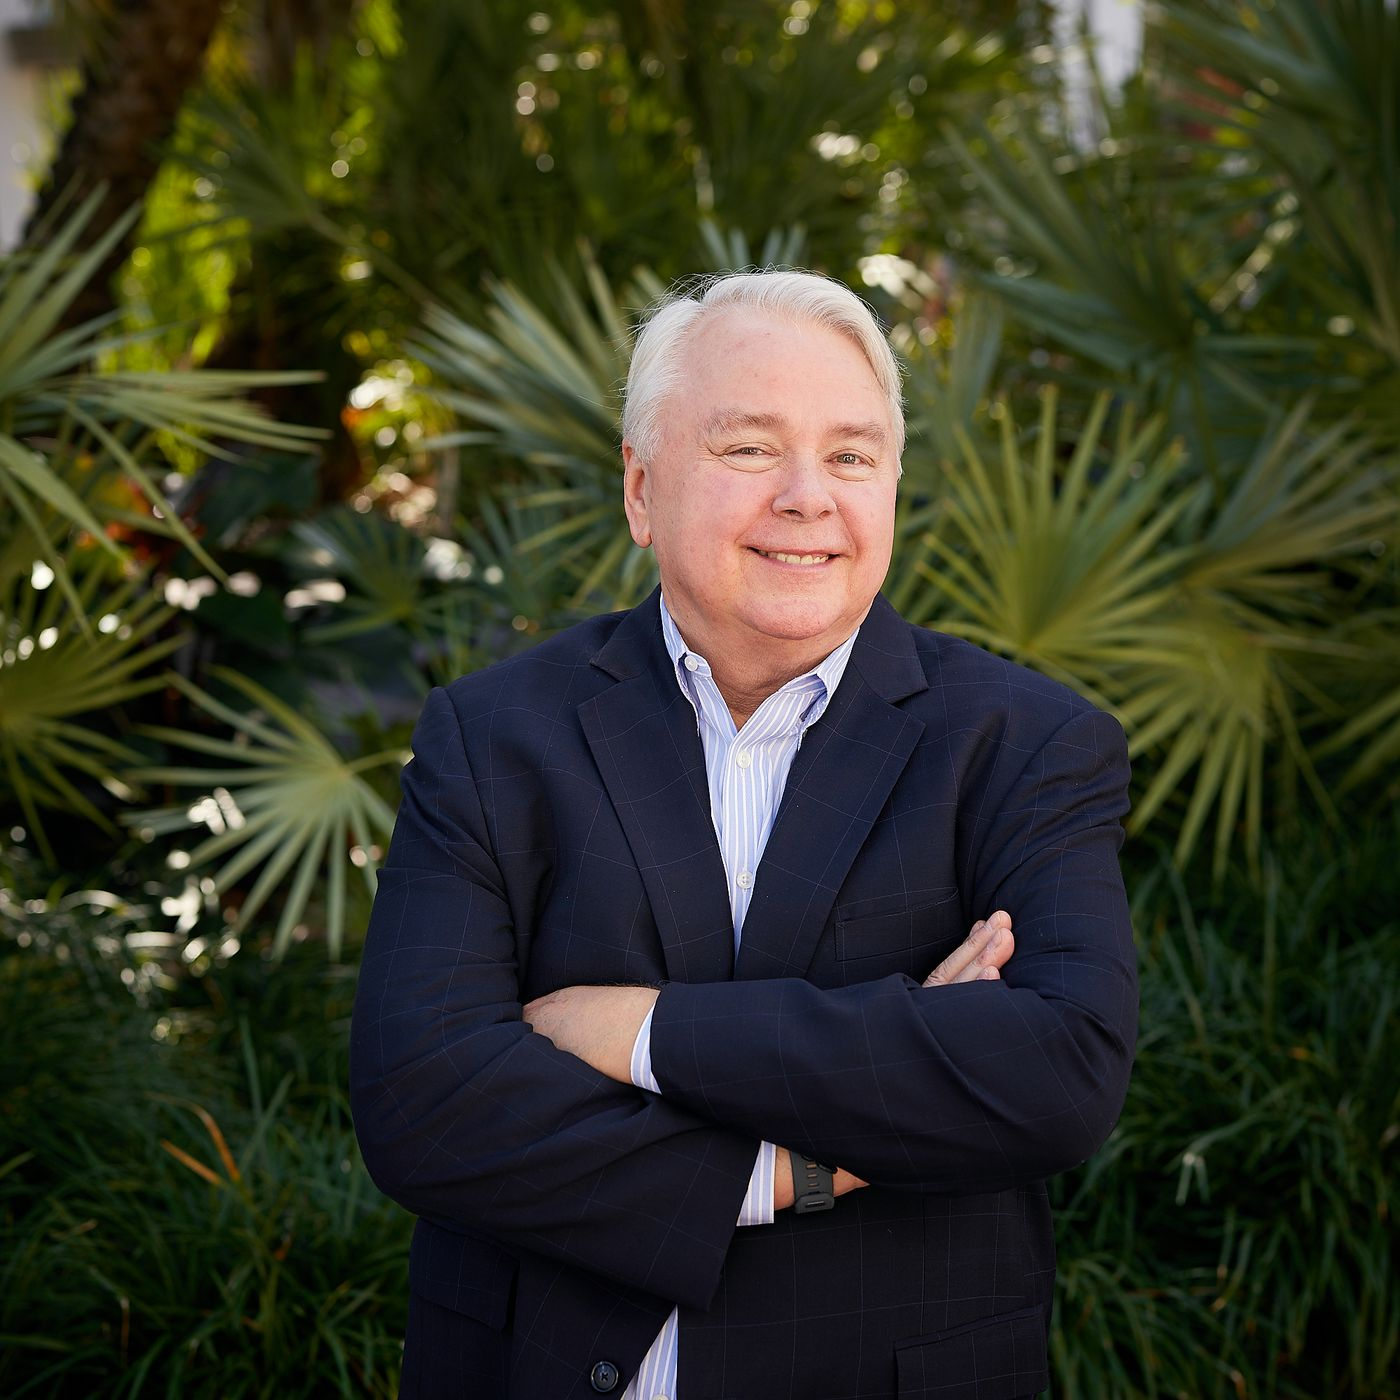 We spoke with Dennis Scholl, President and CEO of Miami-based Oolite Arts, and three Miami artists about how they are adapting to life and work during an uncertain time.